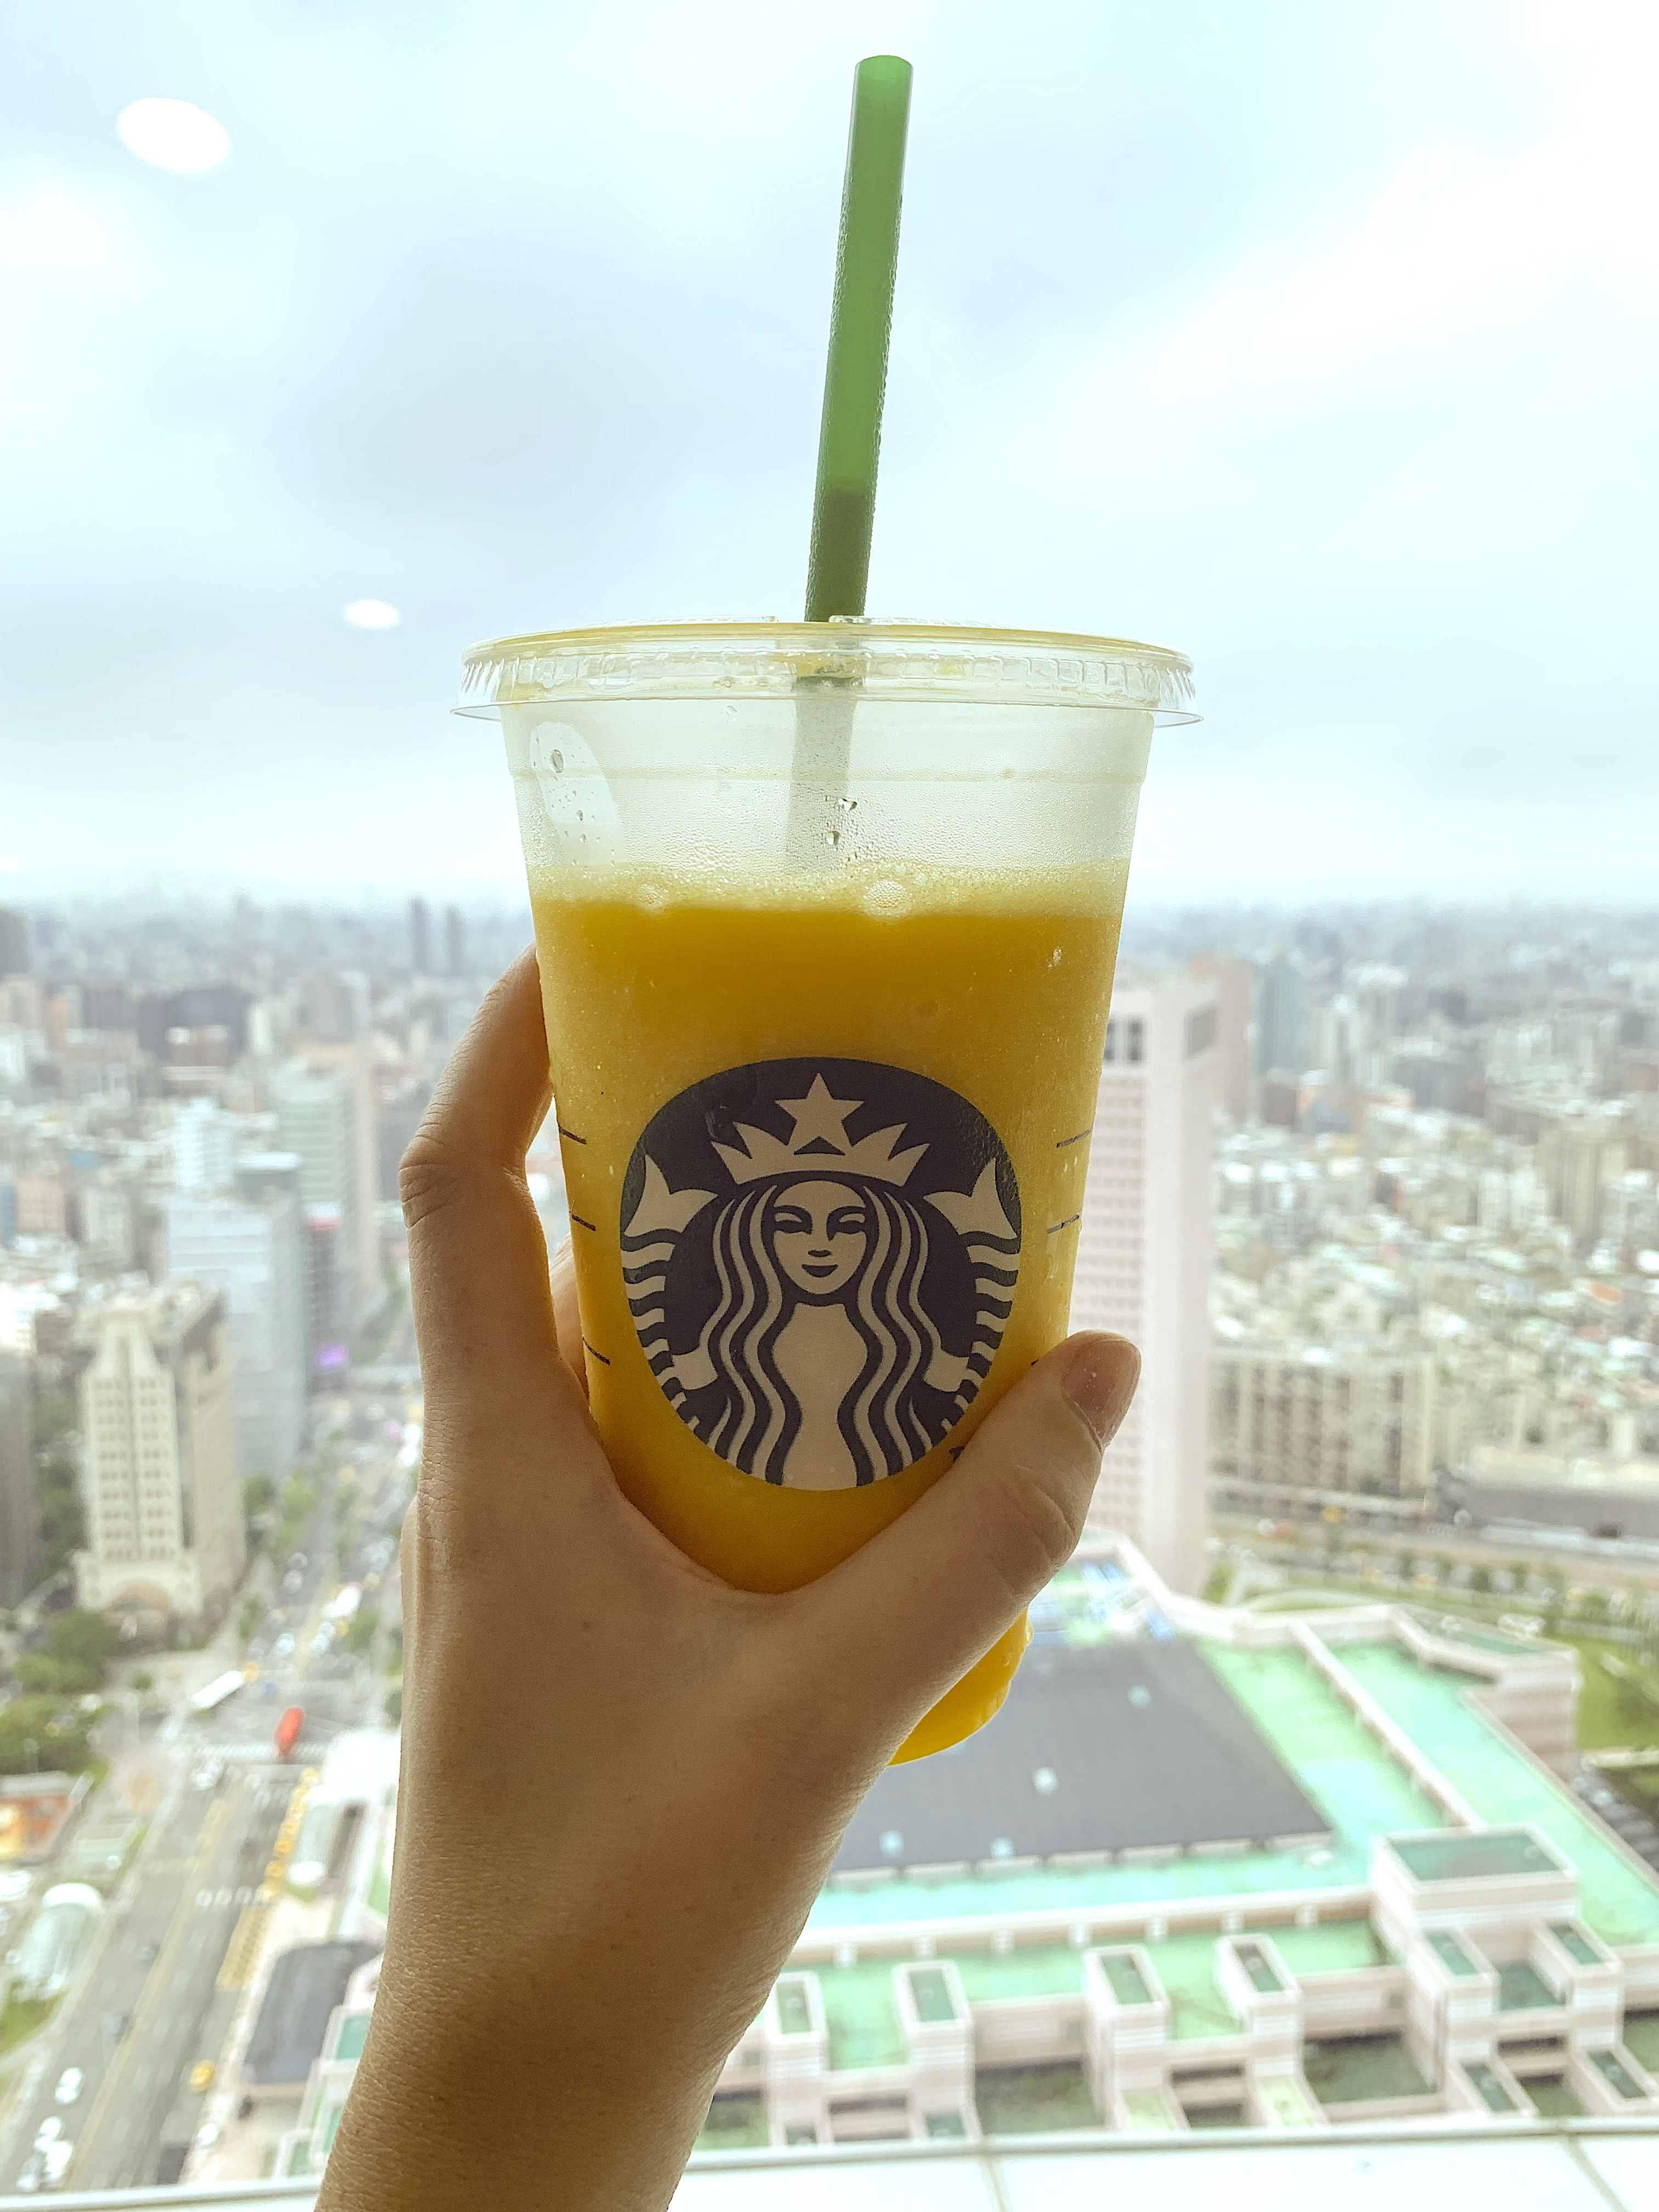 Hand-holds-Starbucks-cup-in-front-of-city-view